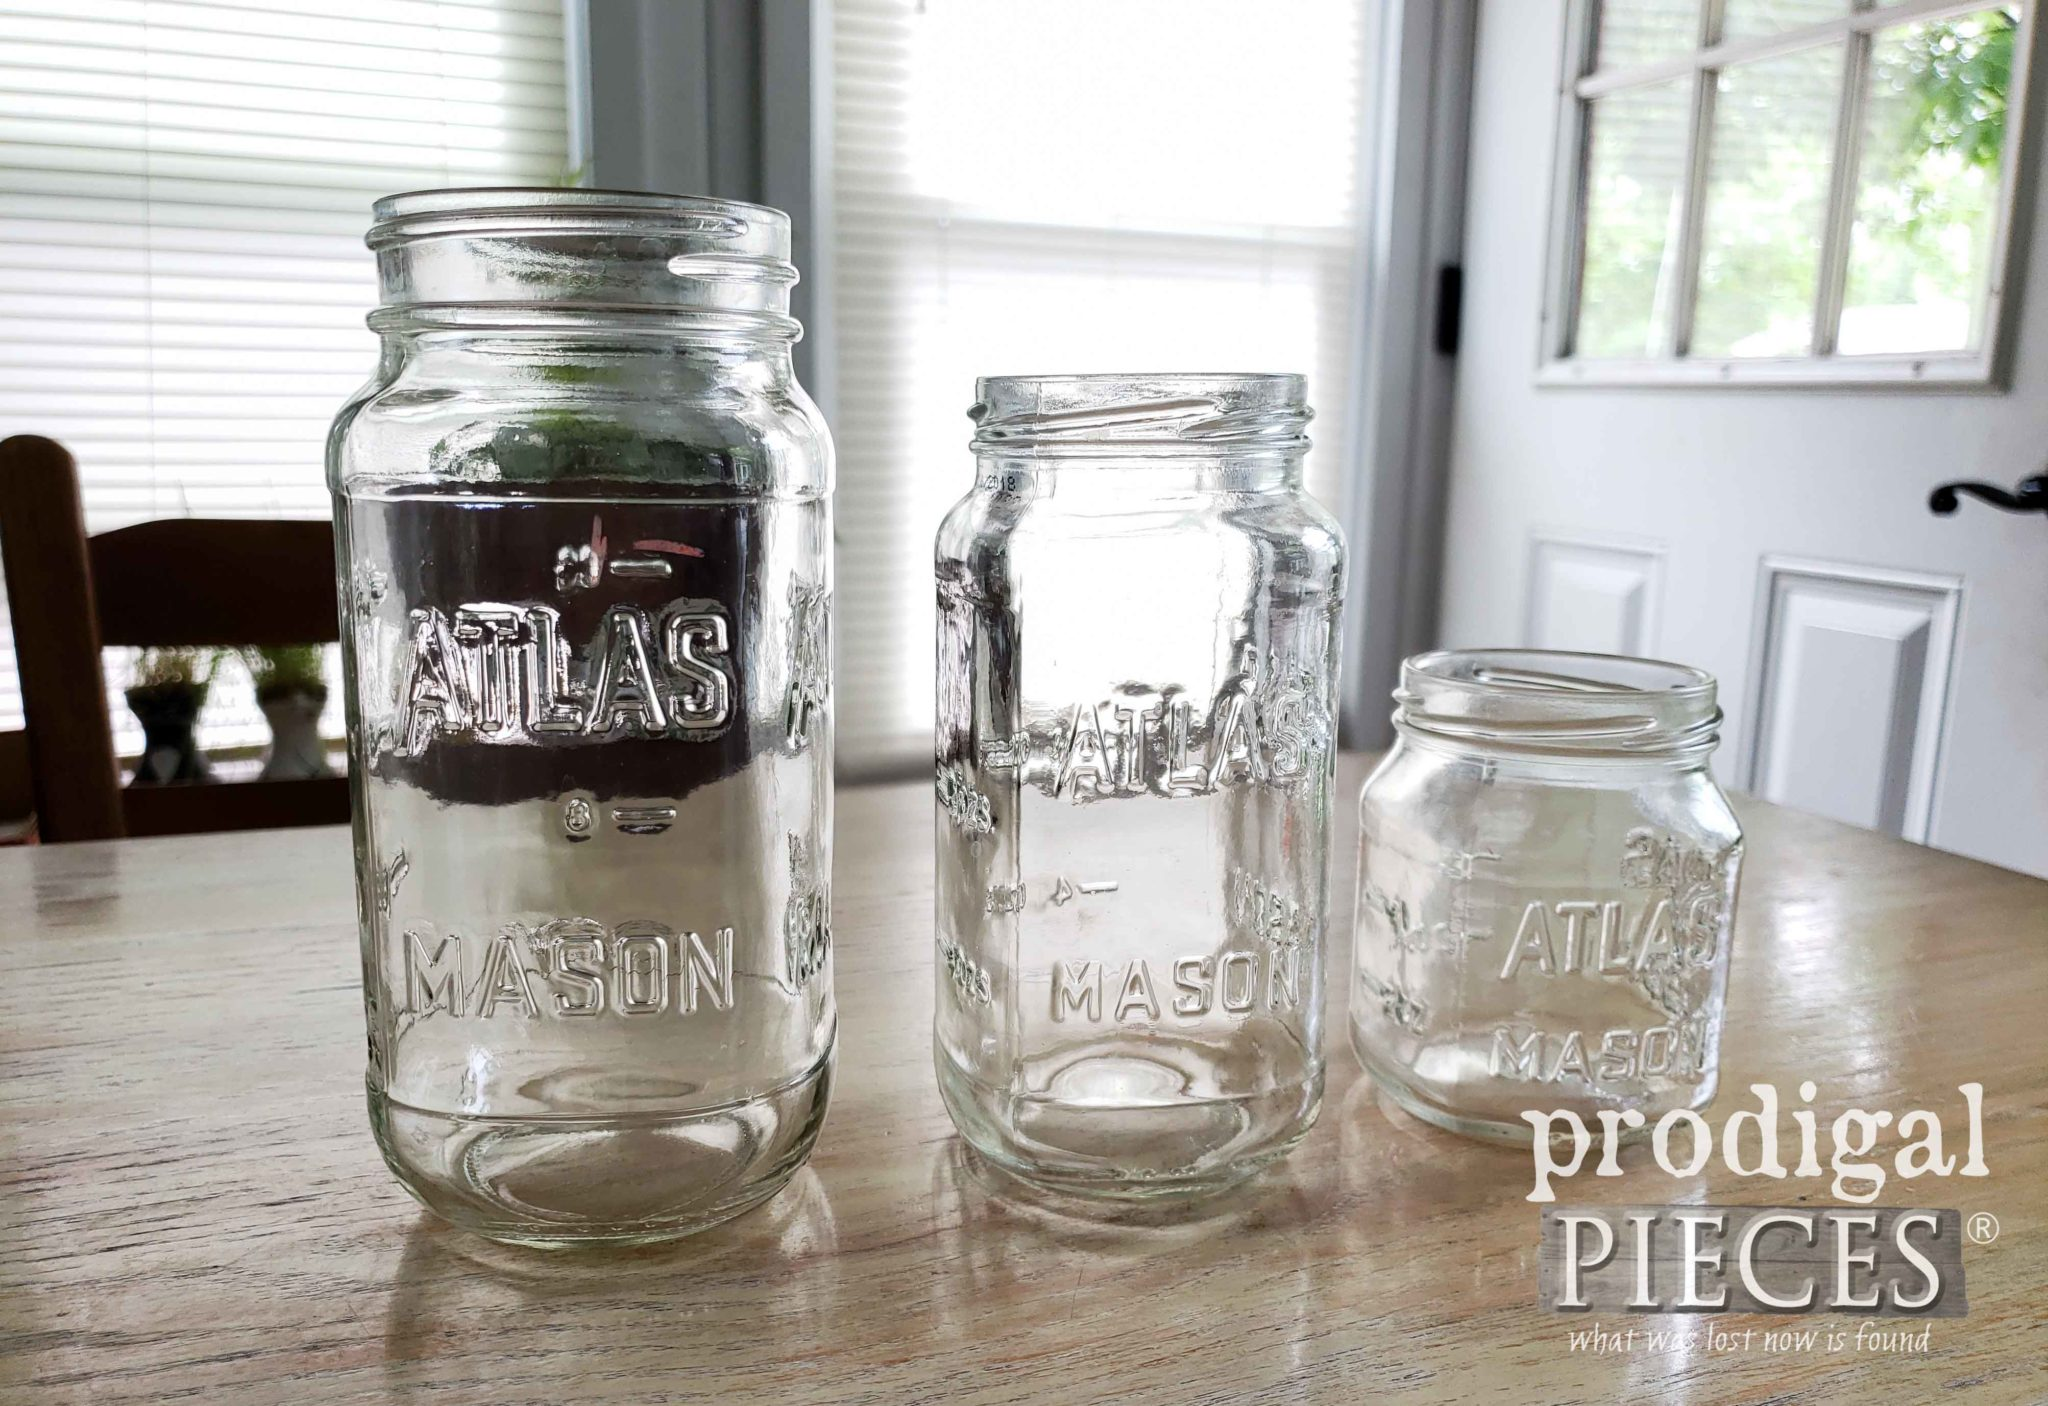 Atlas Canning Jars Before Upcycle into Home Decor by Larissa of Prodigal Pieces | prodigalpieces.com #prodigalpieces